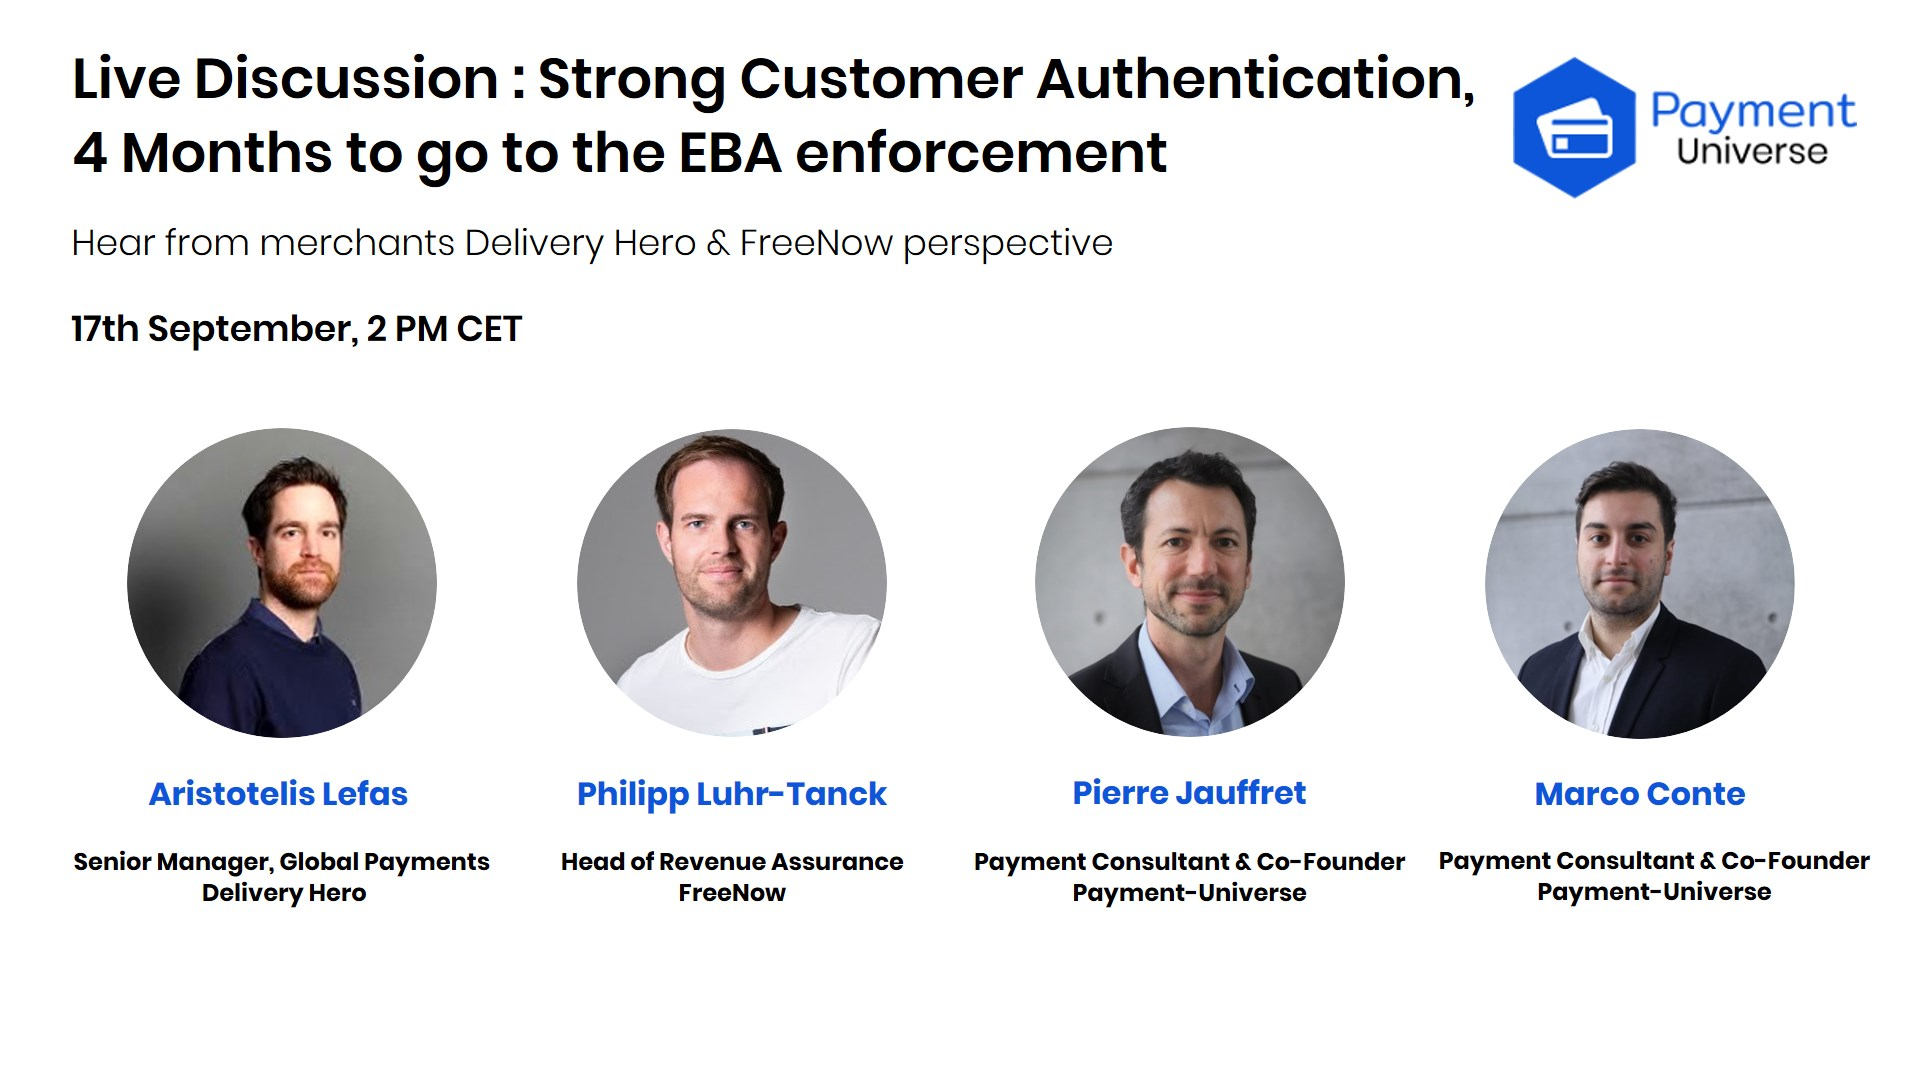 https://www.payment-universe.com/cases/live-discussion-strong-customer-authentication/